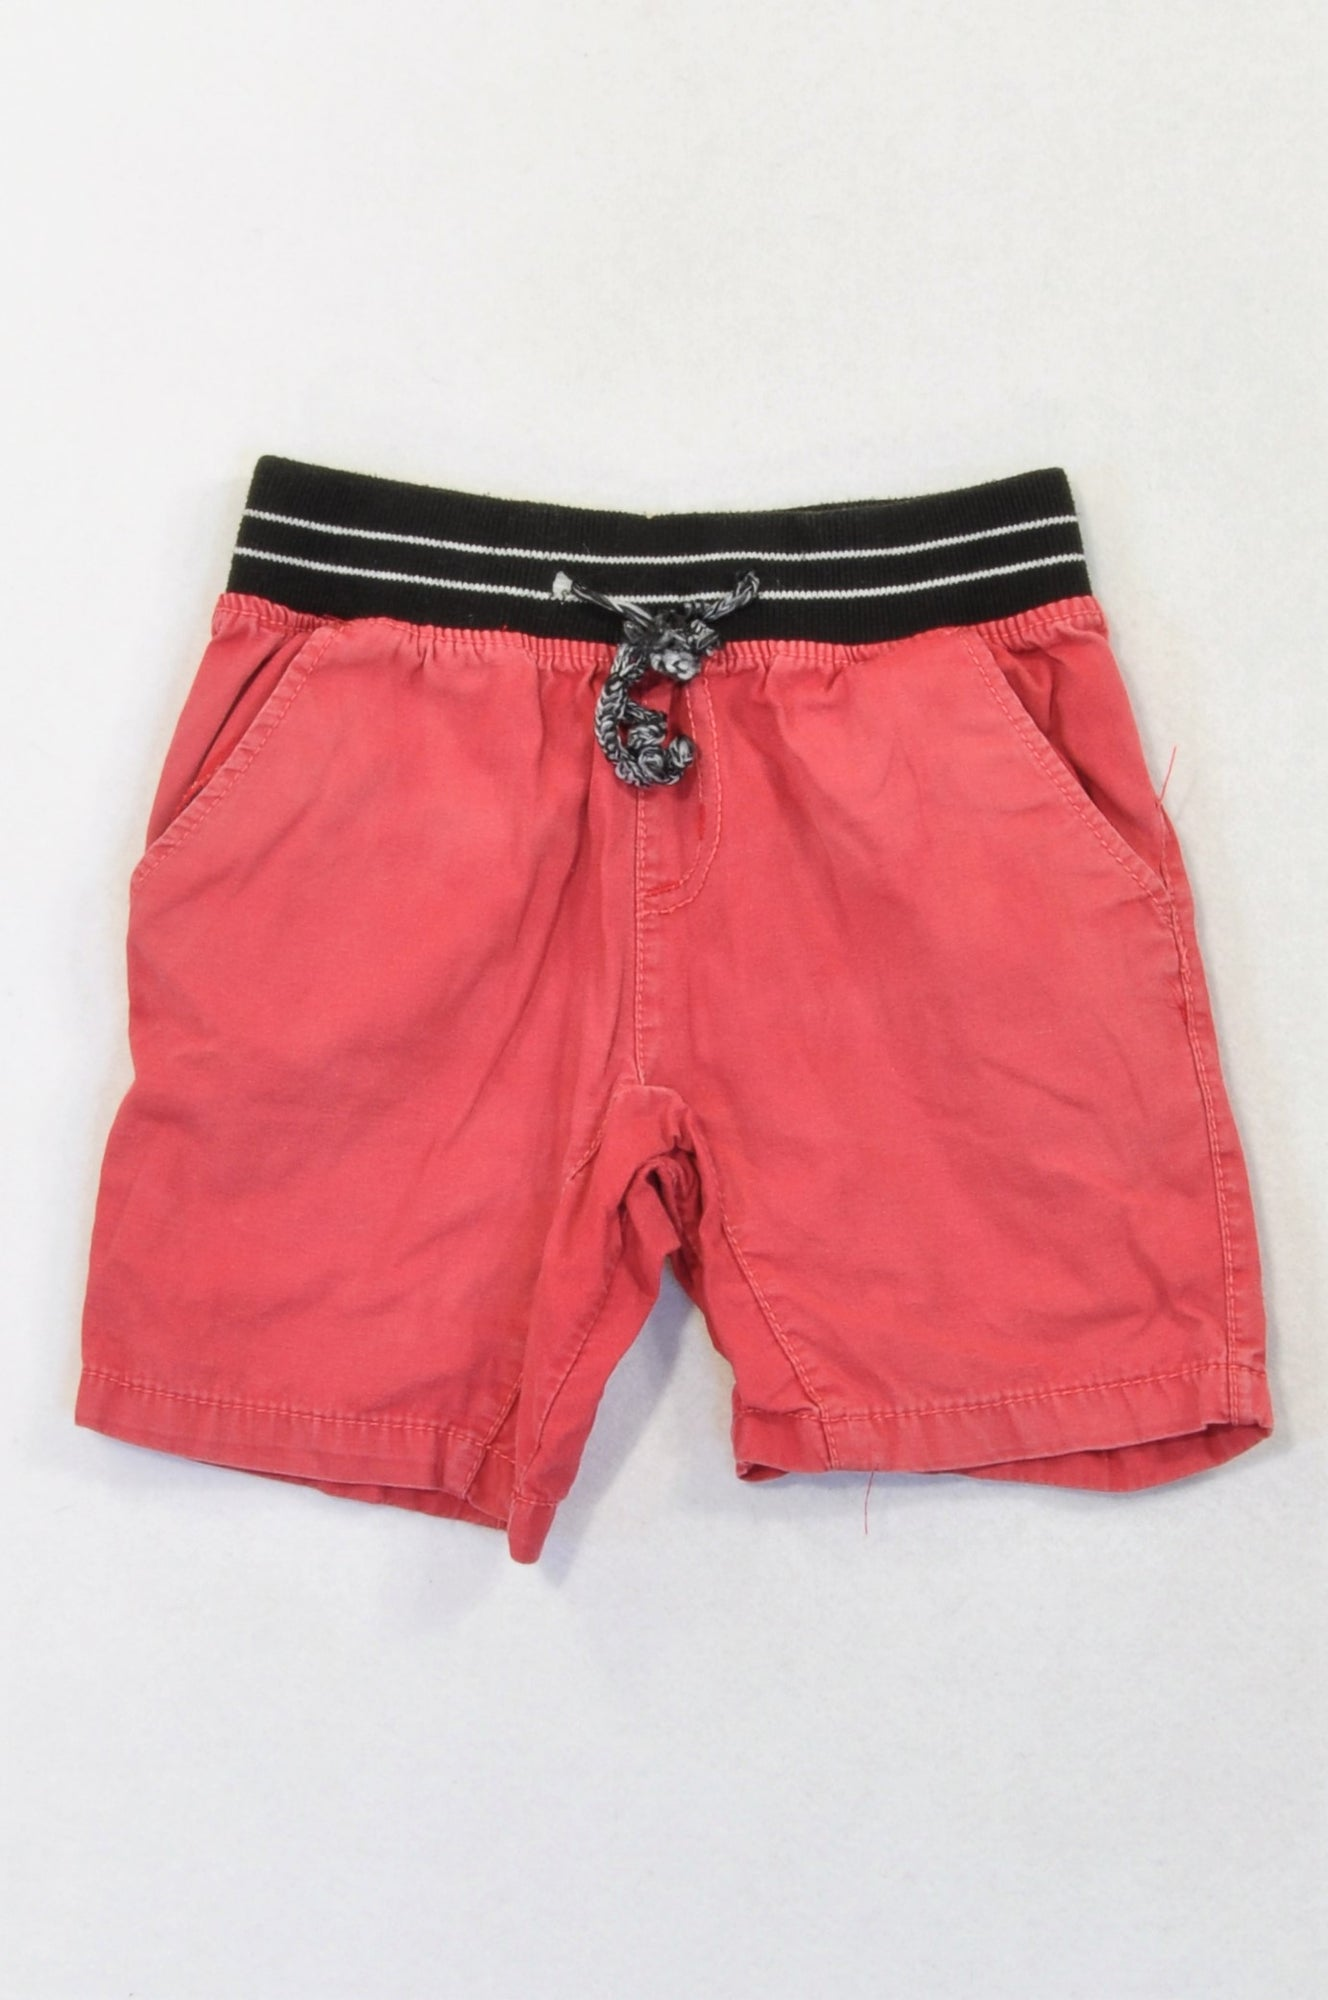 Ackermans Red Banded Shorts Girls 12-18 months